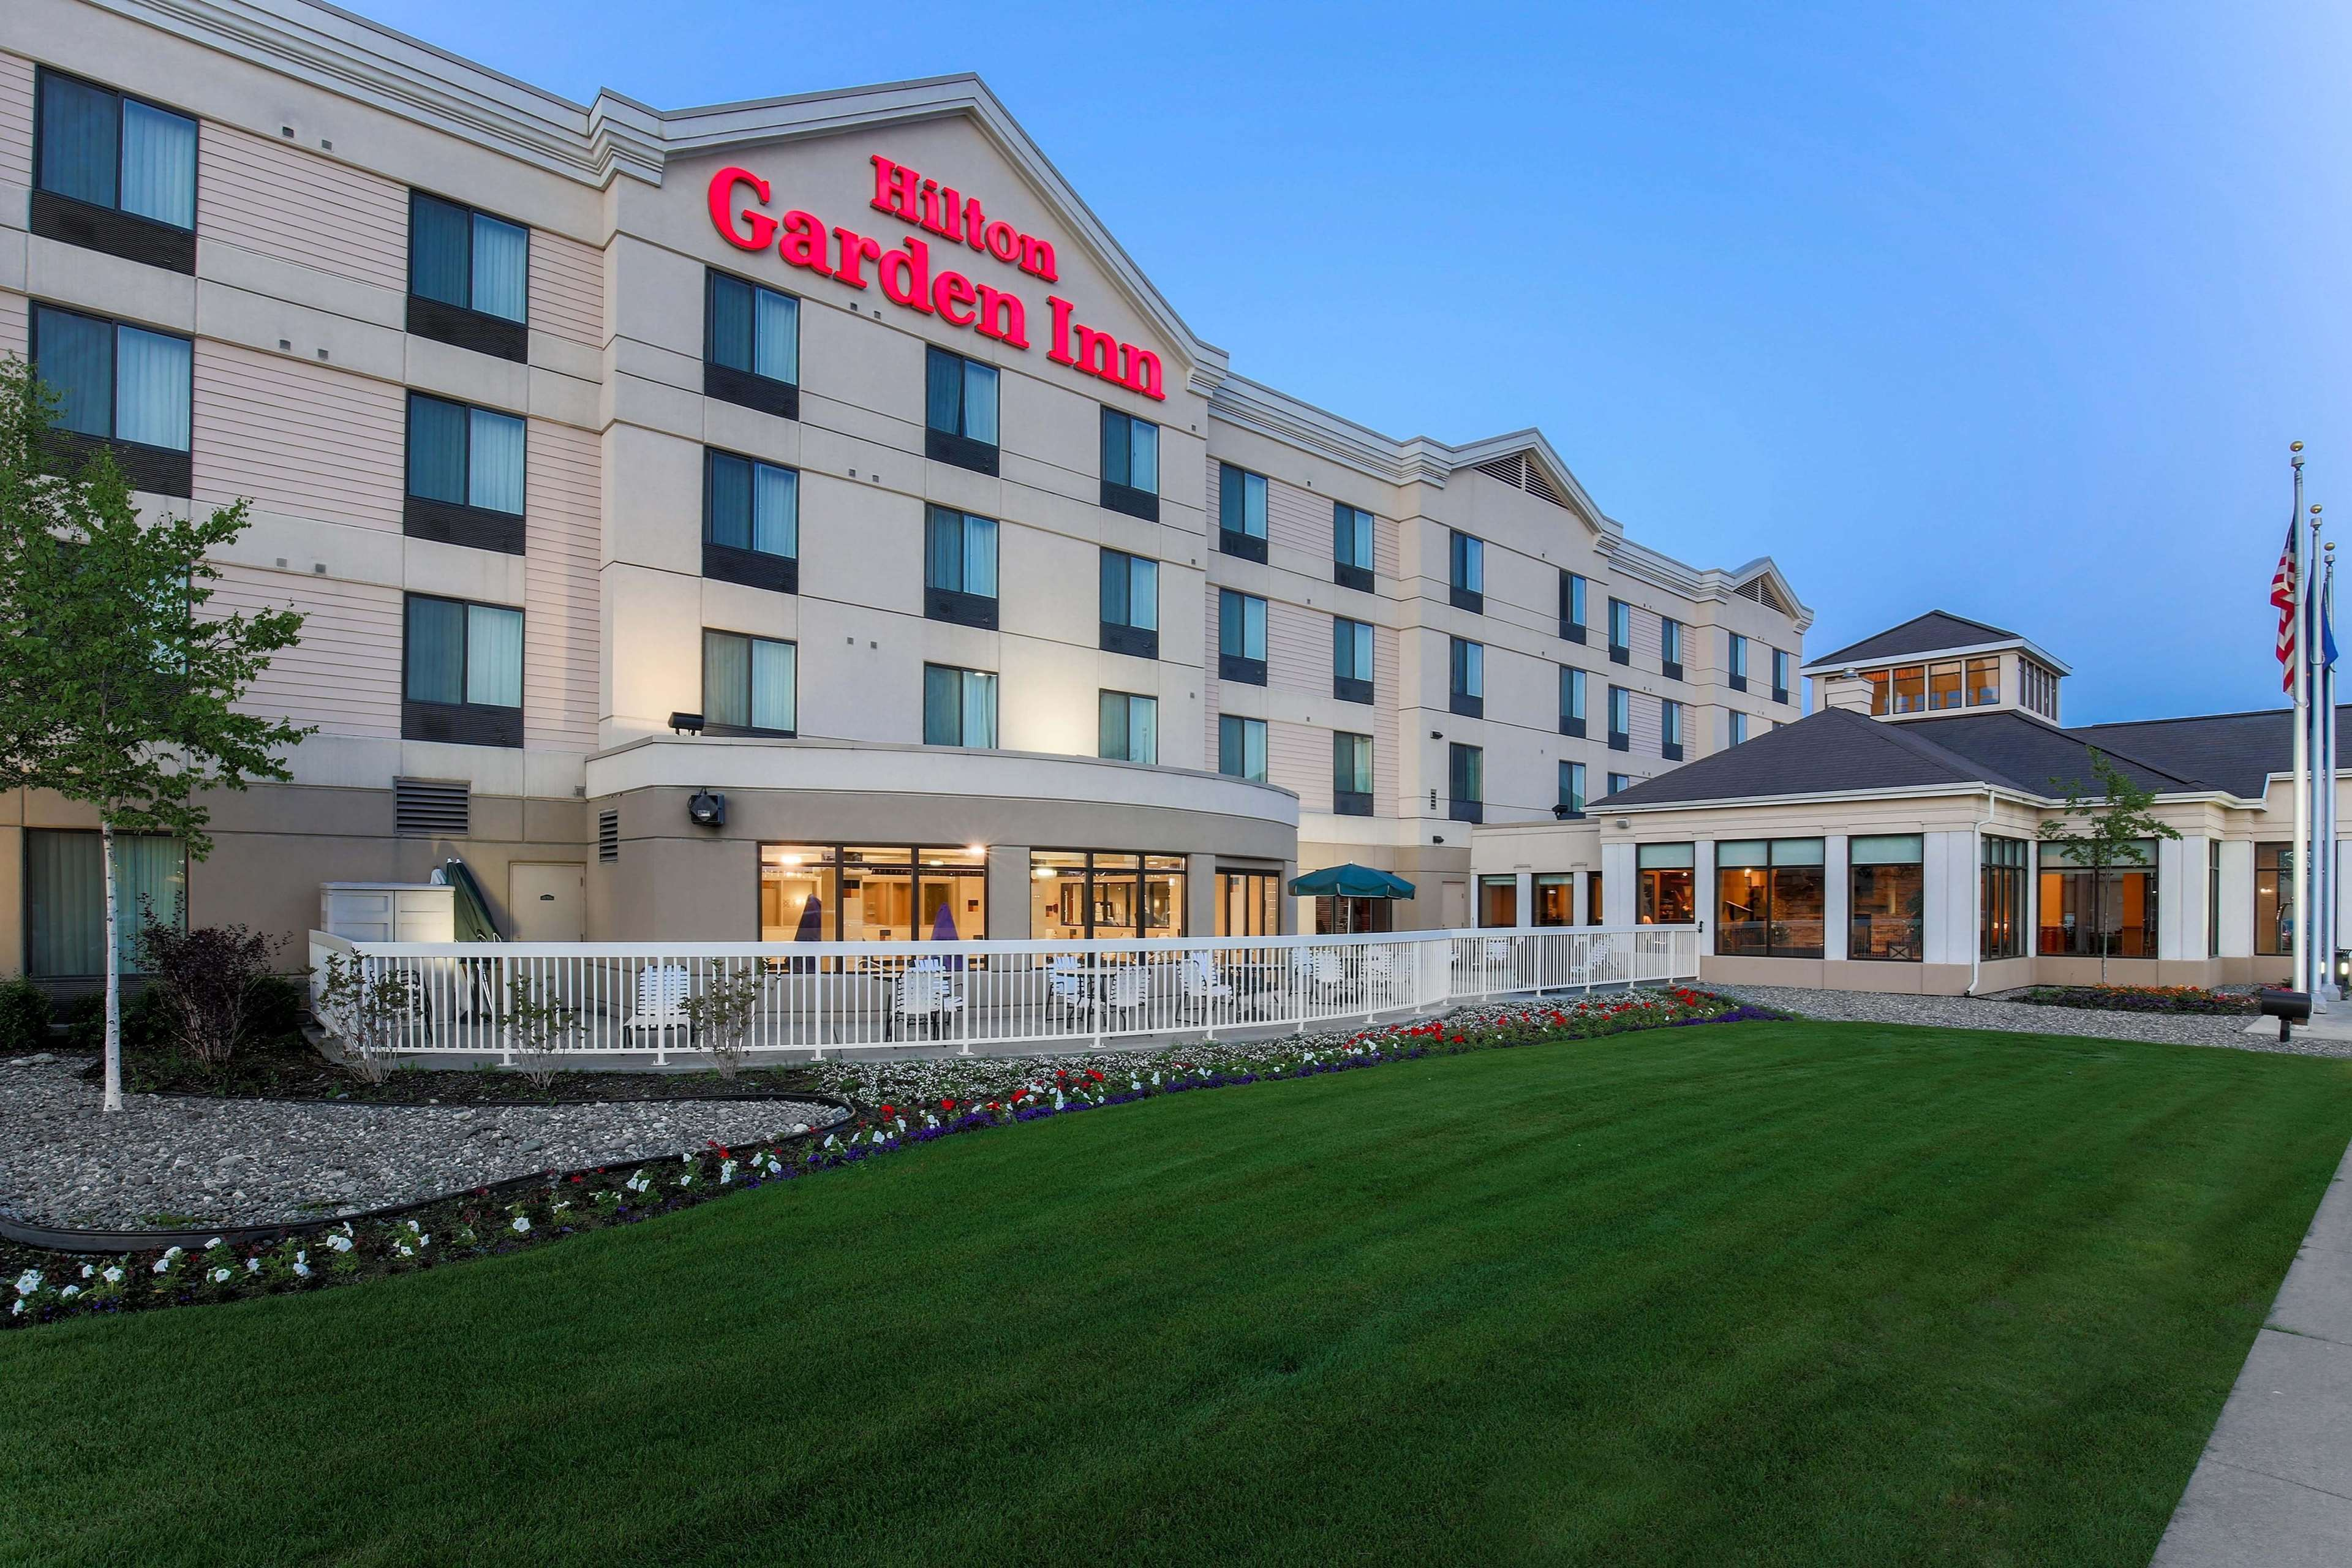 Hilton Garden Inn Anchorage Coupons Near Me In Anchorage 8coupons